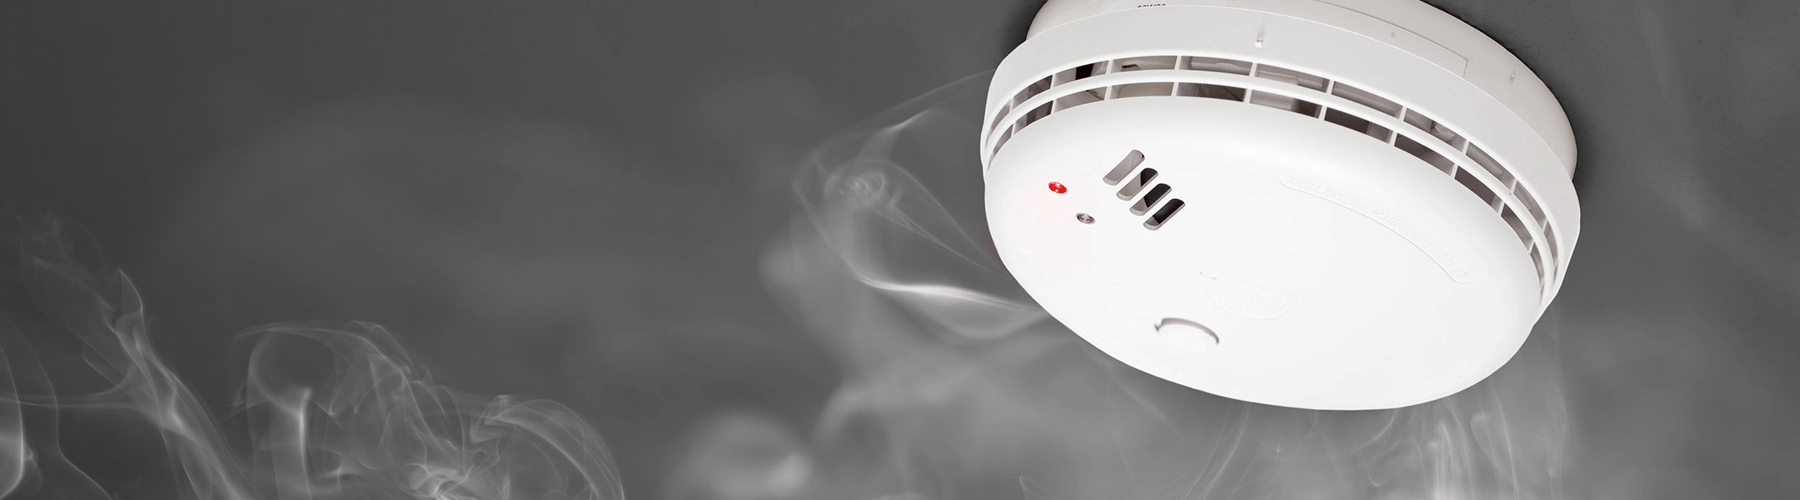 fire safety - smoke alarm detecting white smoke